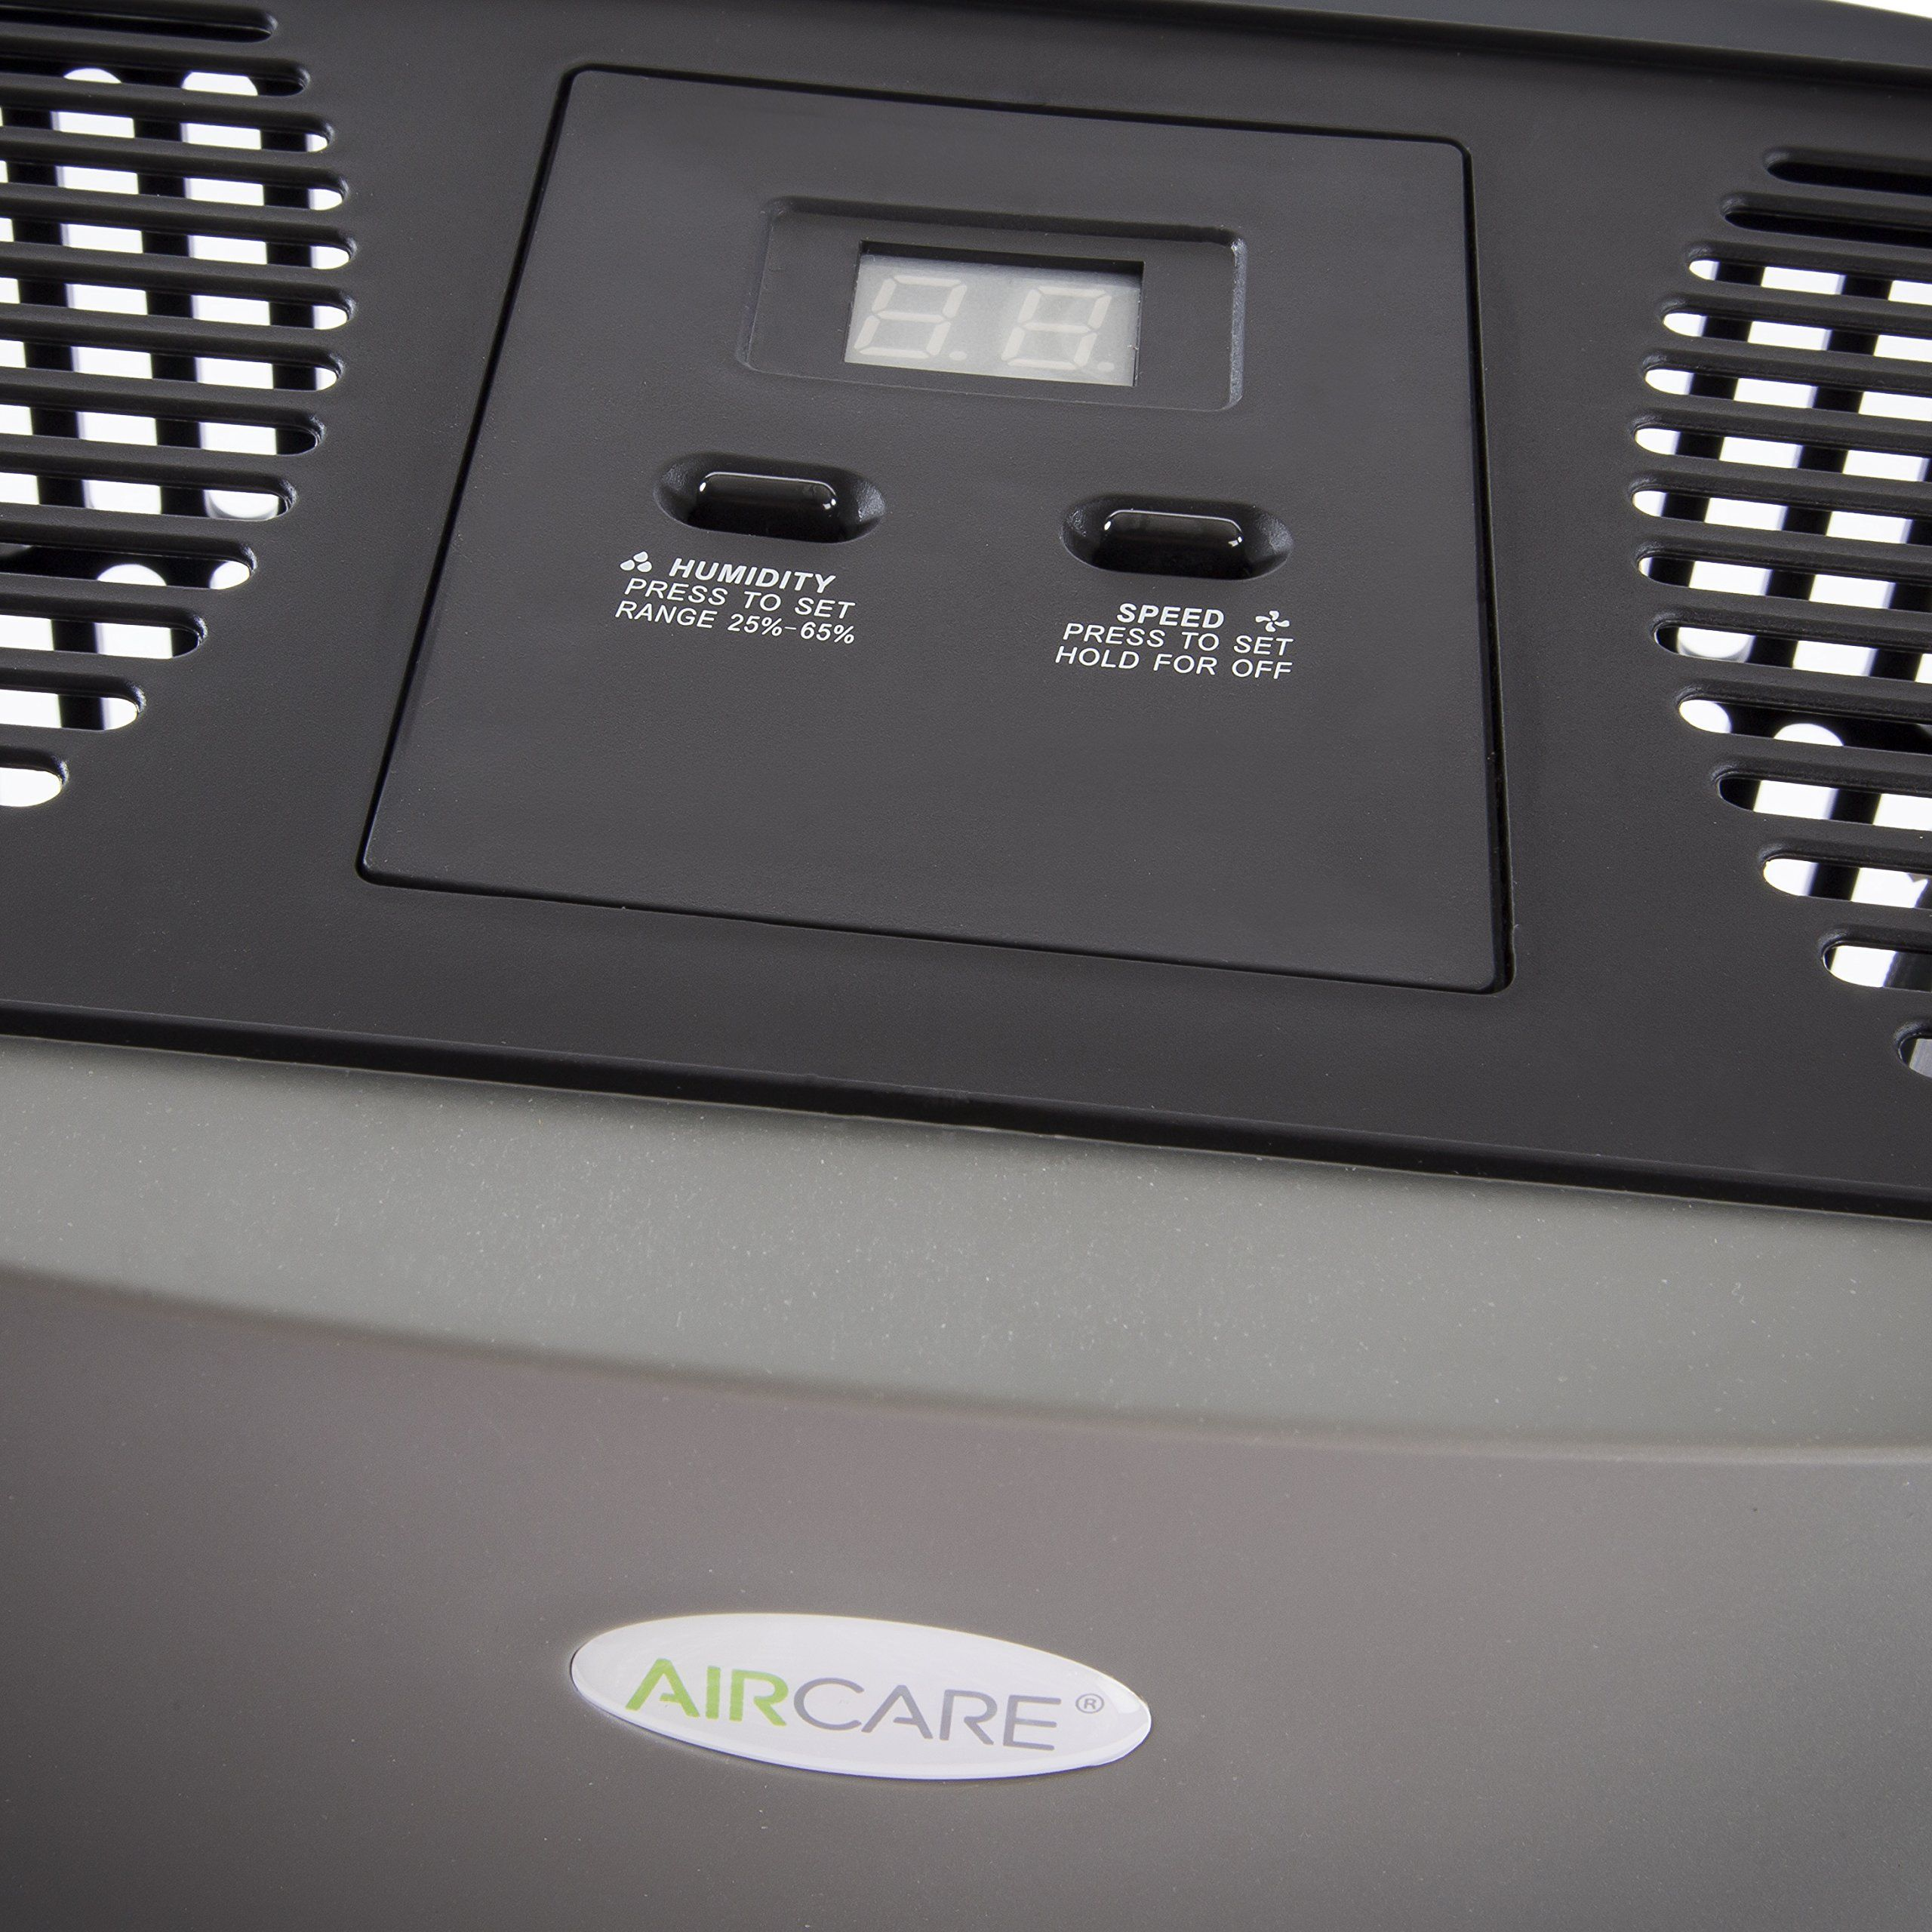 AIRCARE D46 720 Tower Evaporative Humidifier for 1200 sq